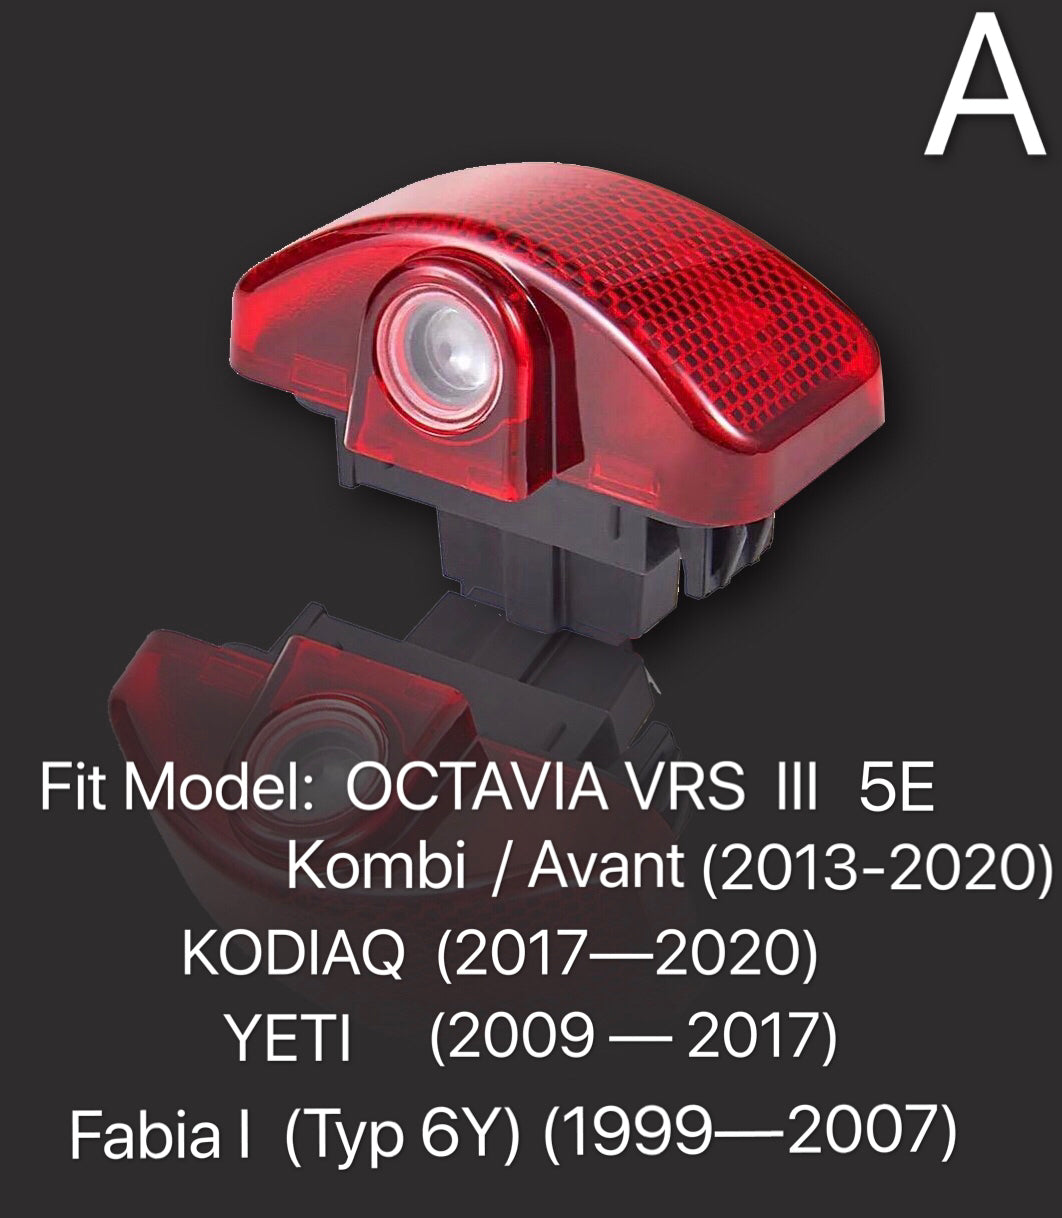 skoda Laurin&klement LOGO PROJECTOT LIGHTS Nr.19  (quantity 1 = 2 Logo Films /2 door lights)